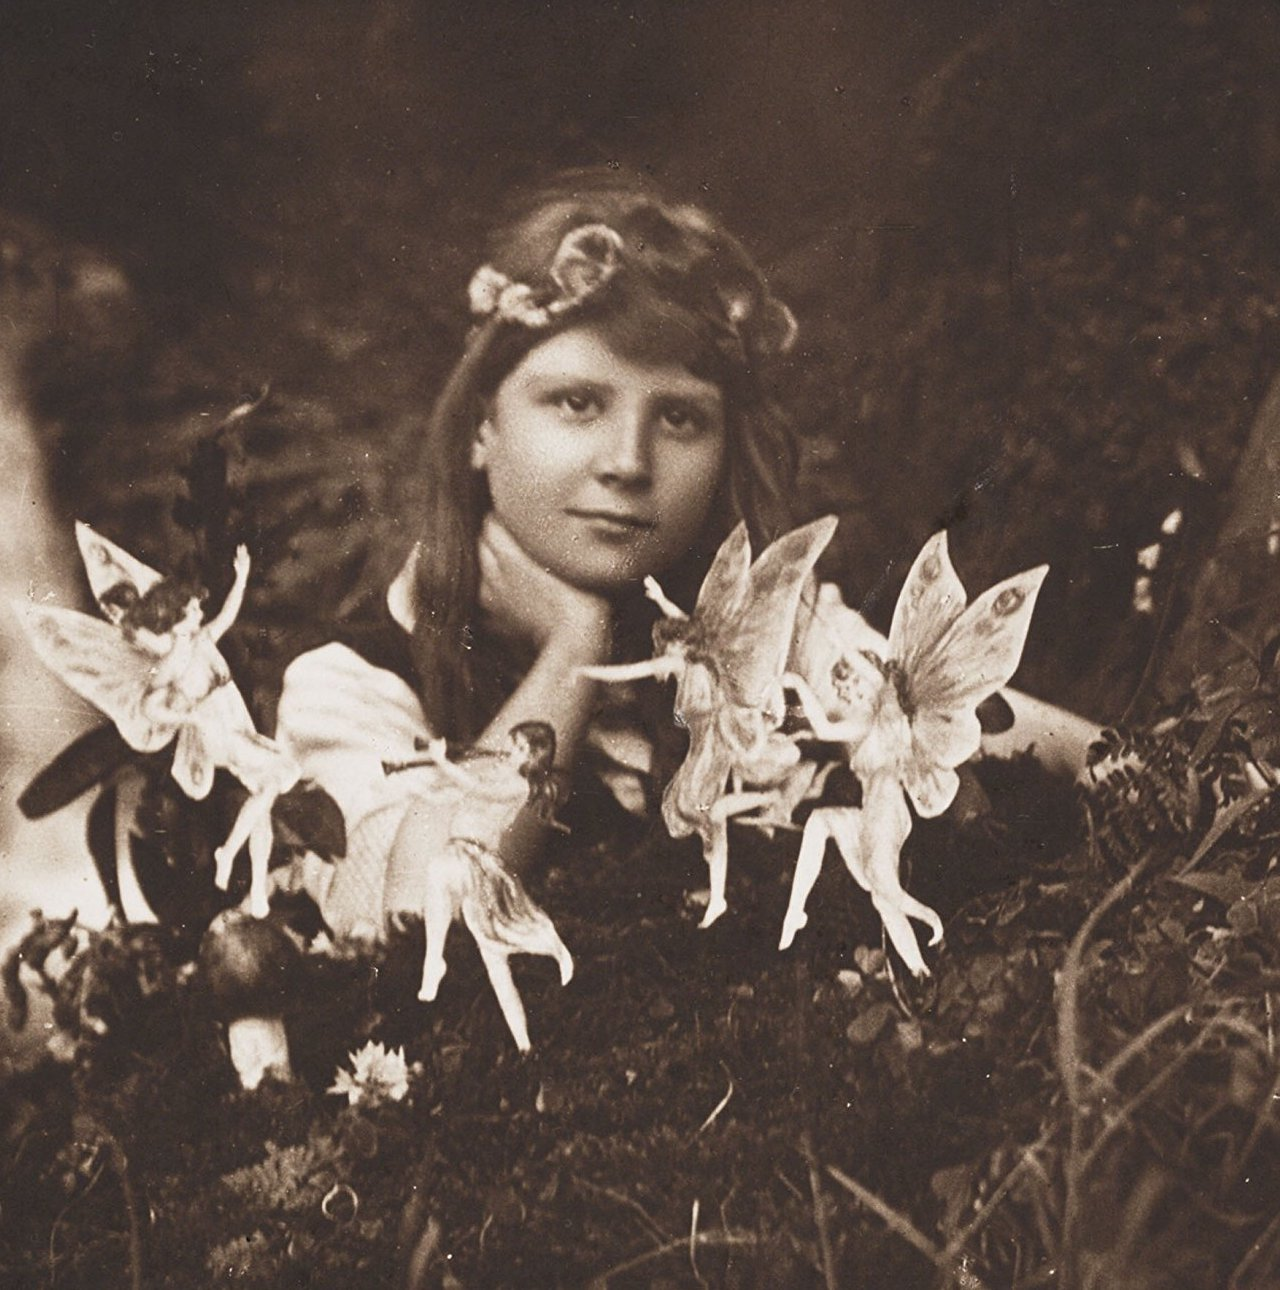 Wistful Imaginings: Reframing the Case of the Cottingley Fairies